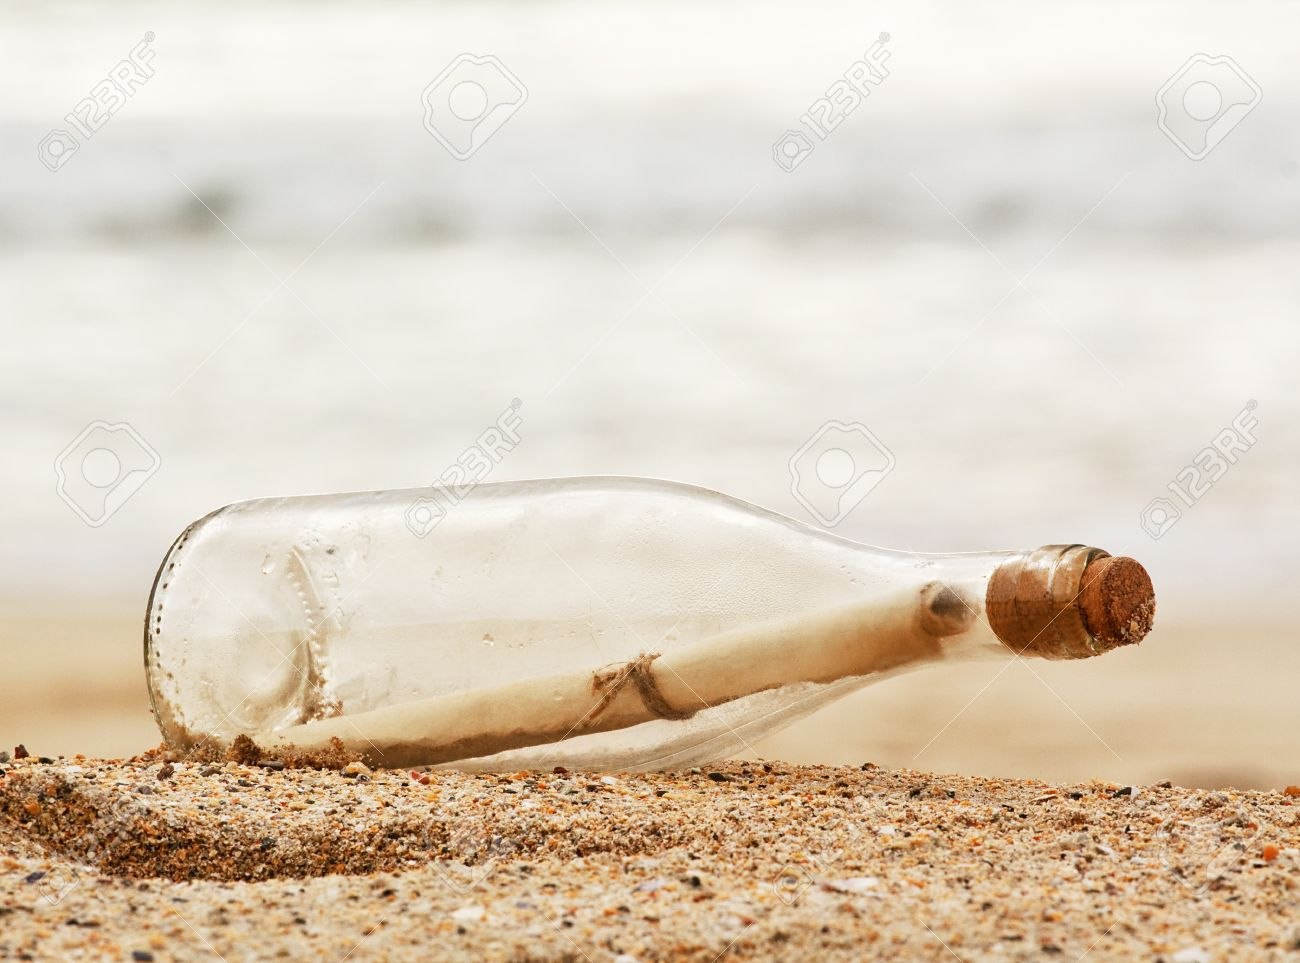 a Message in a bottle washed up on the beach, great business concept for snail mail, spam, or bad slow communication Stock Photo - 15840712